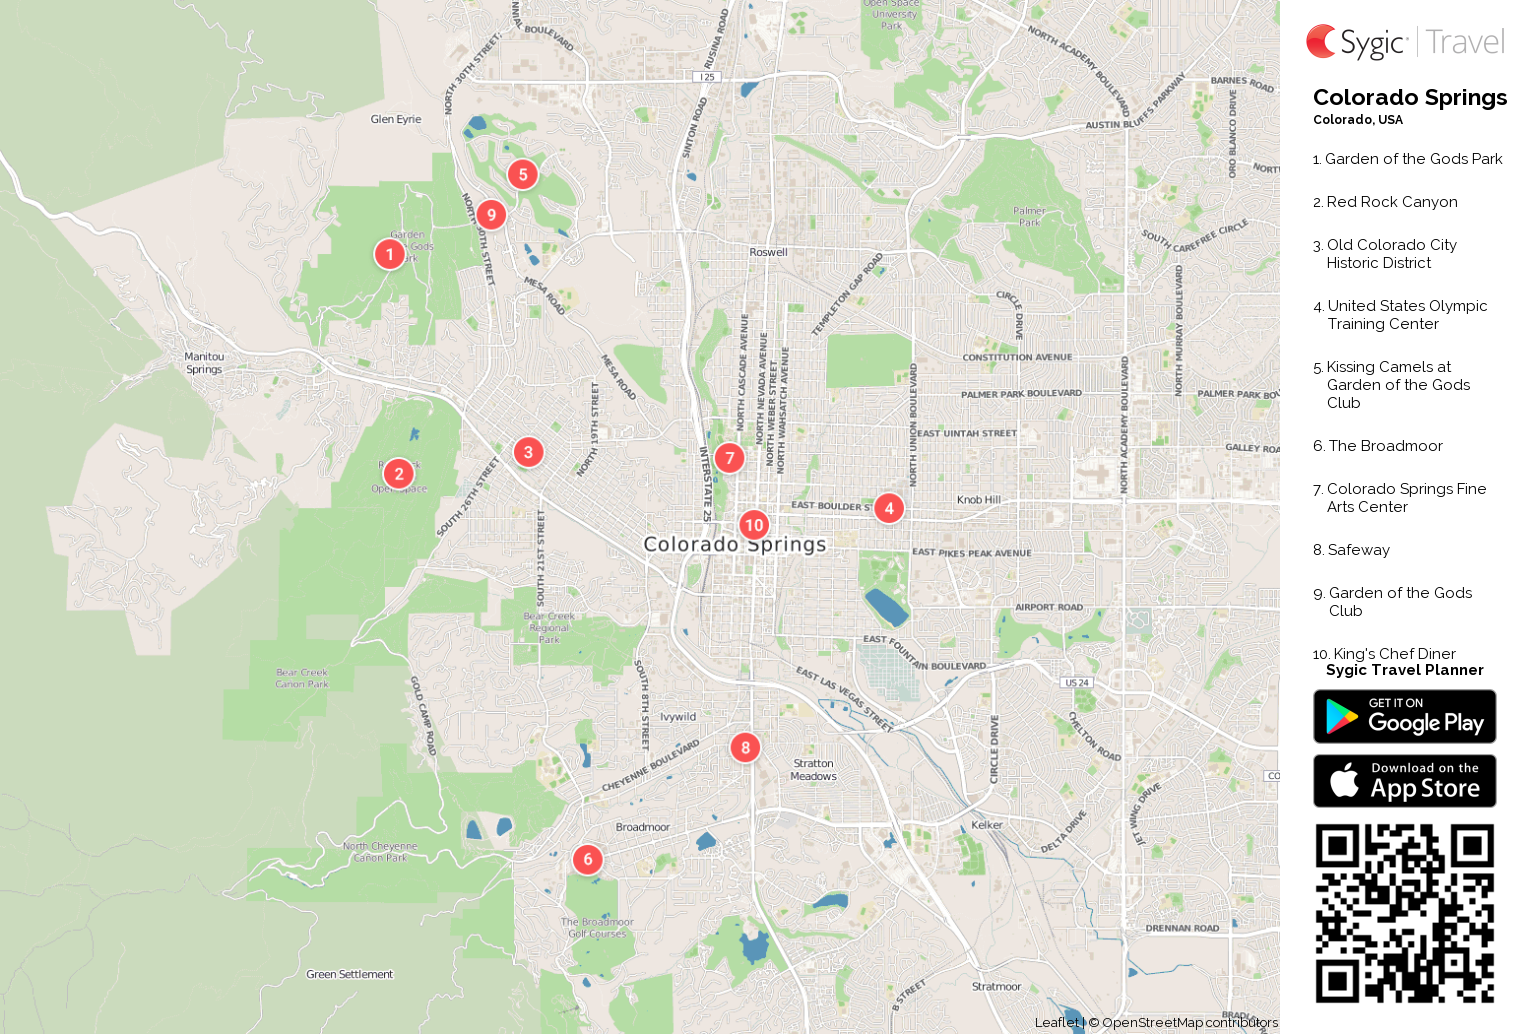 Colorado Springs Printable Tourist Map | Sygic Travel